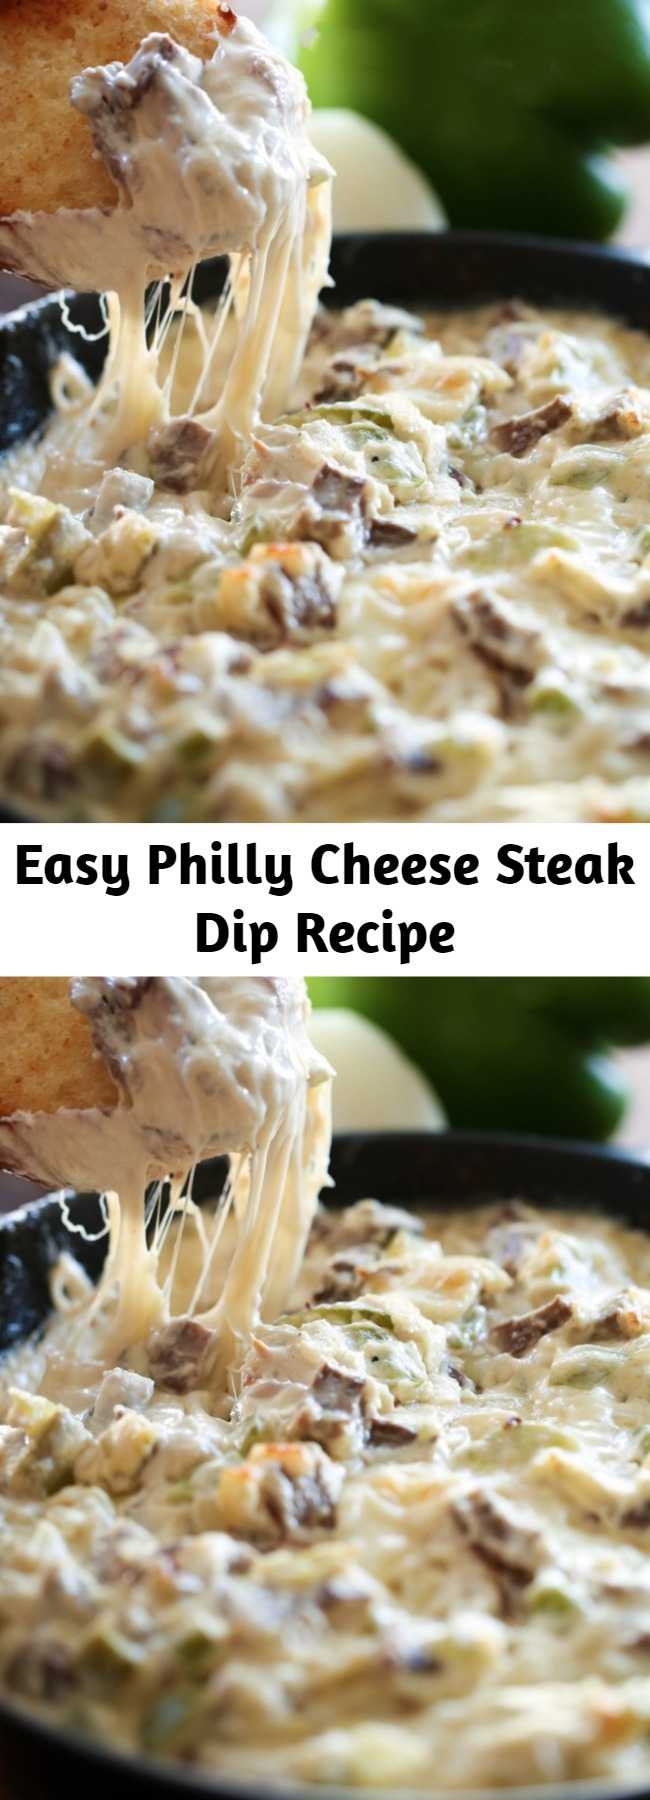 Easy Philly Cheese Steak Dip Recipe - This Philly Cheese Steak Dip is phenomenal and truly tastes JUST like you are biting into that beloved and well sought-after sandwich. The flavor is incredible and this recipe is super unique and exciting!